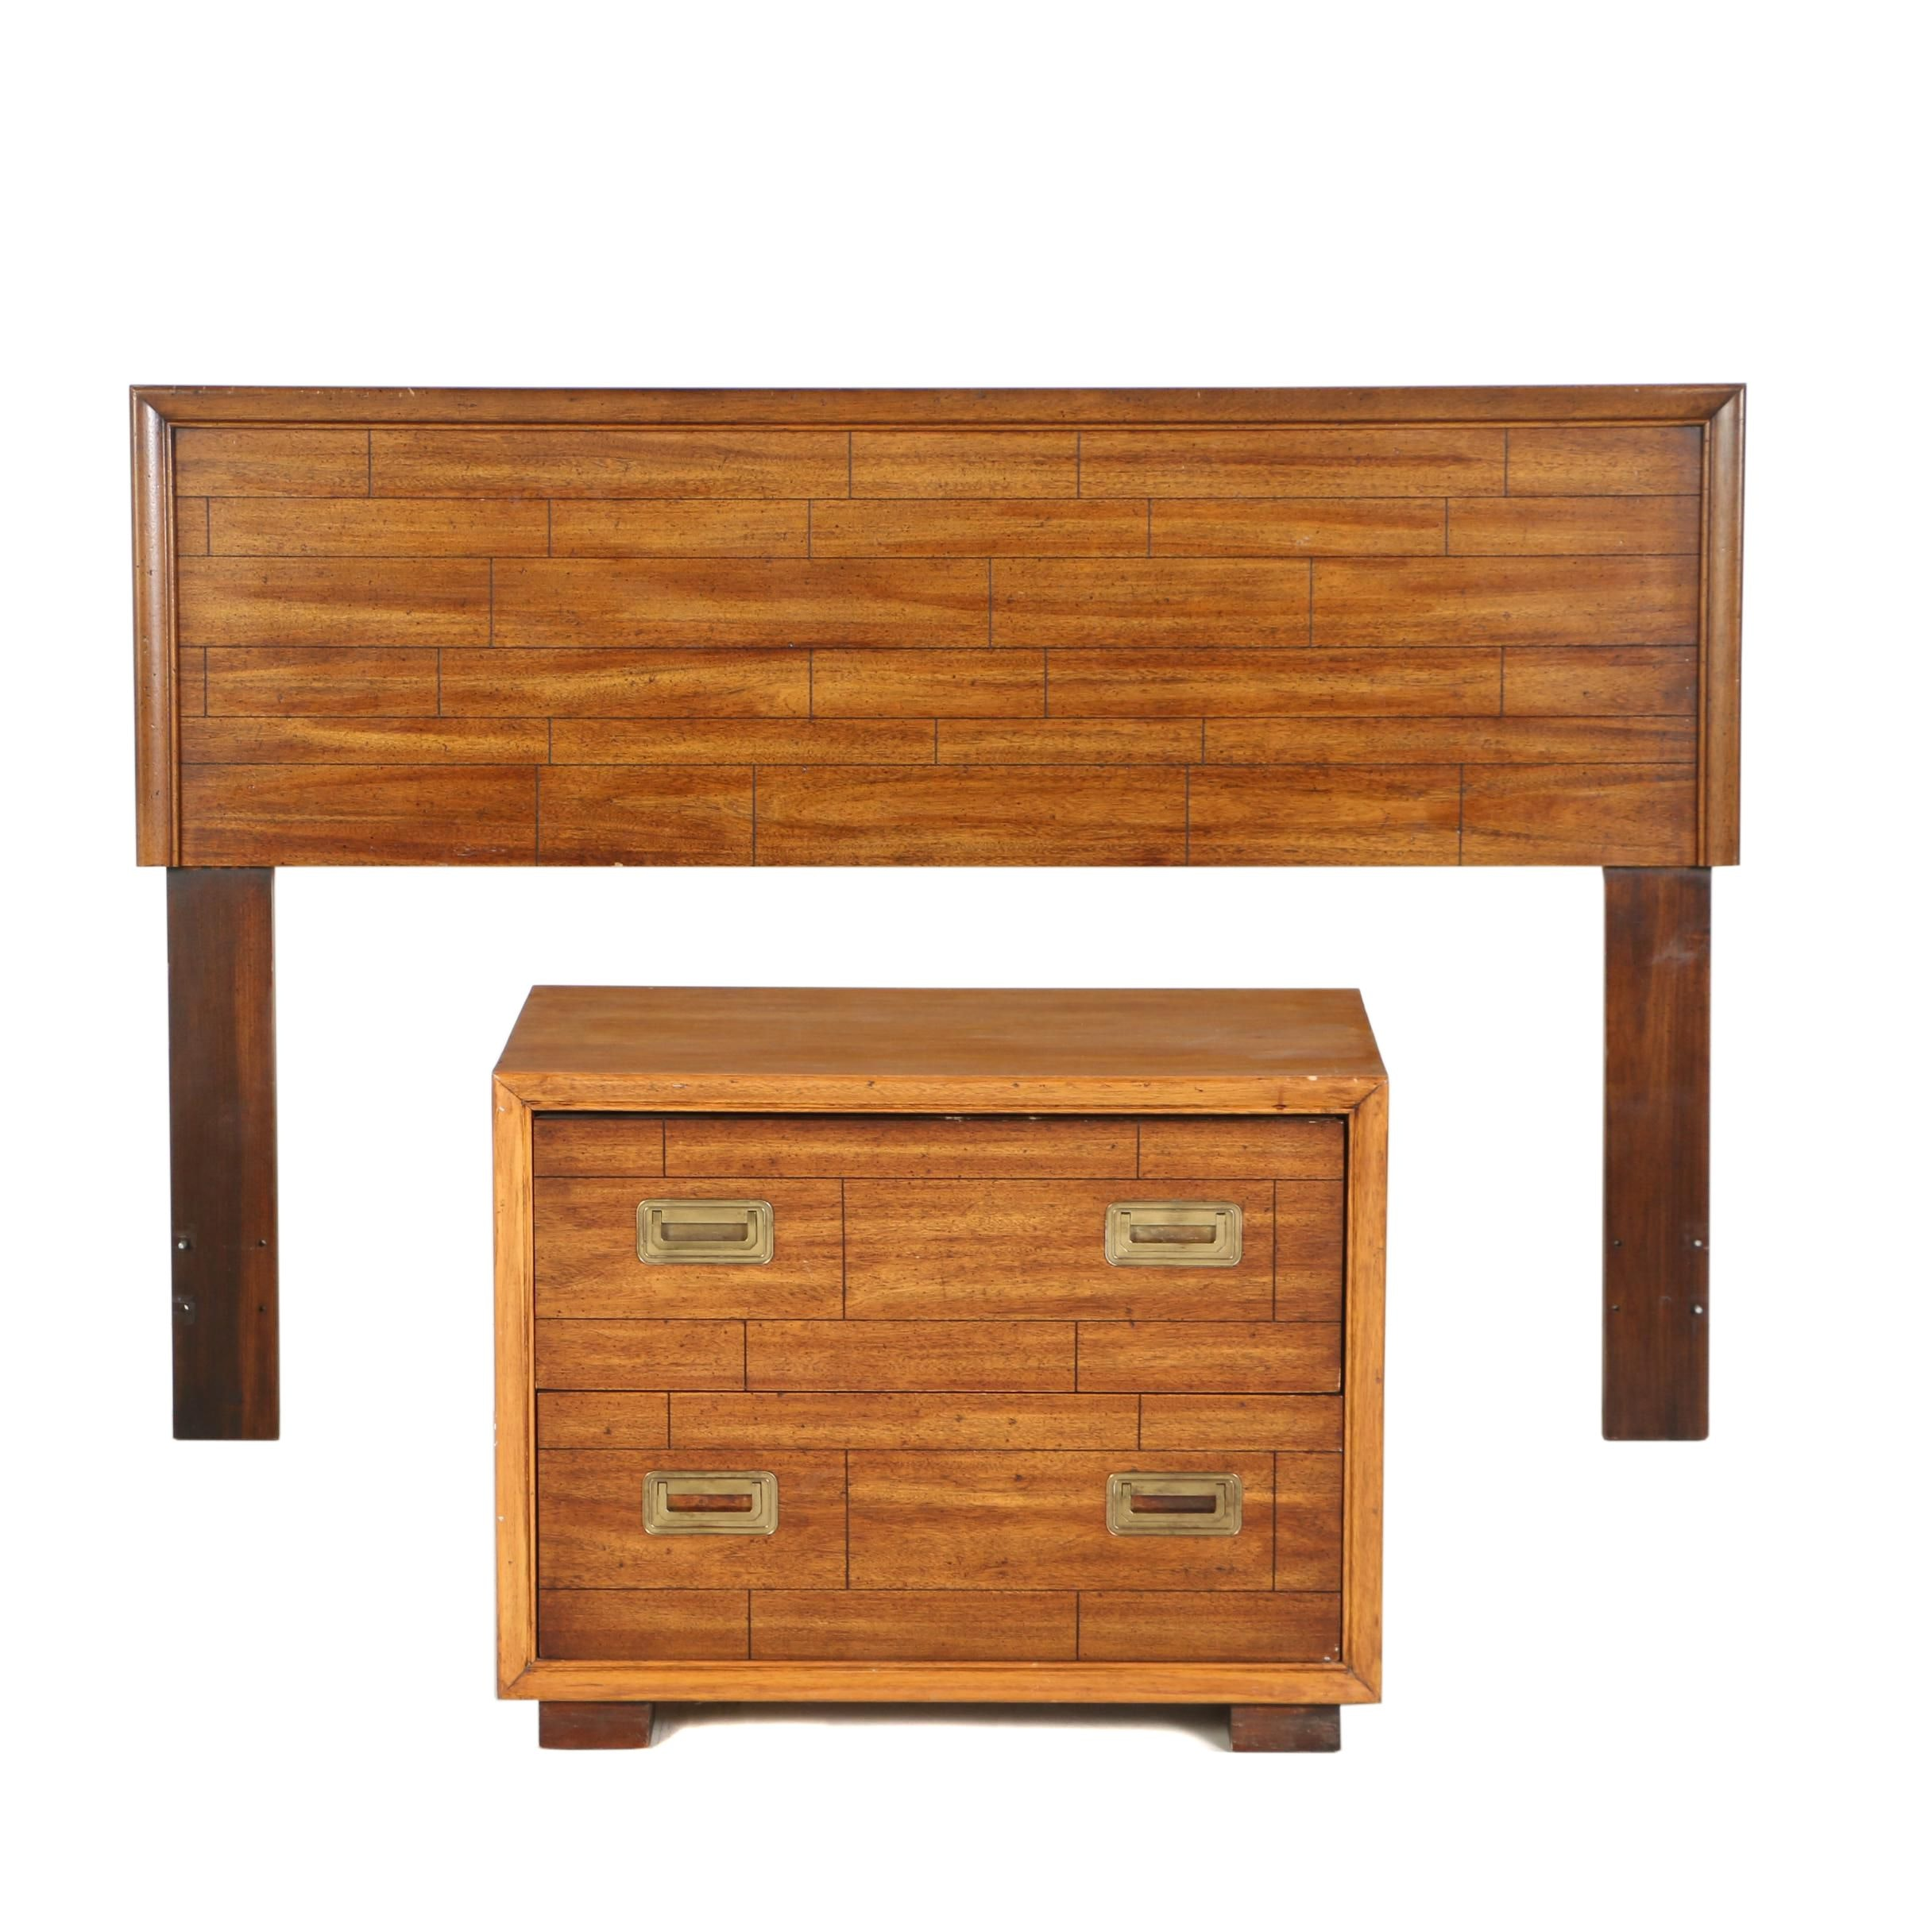 Walnut-Stained Full Size Headboard and Bedside Chest by Lane, Circa 1976